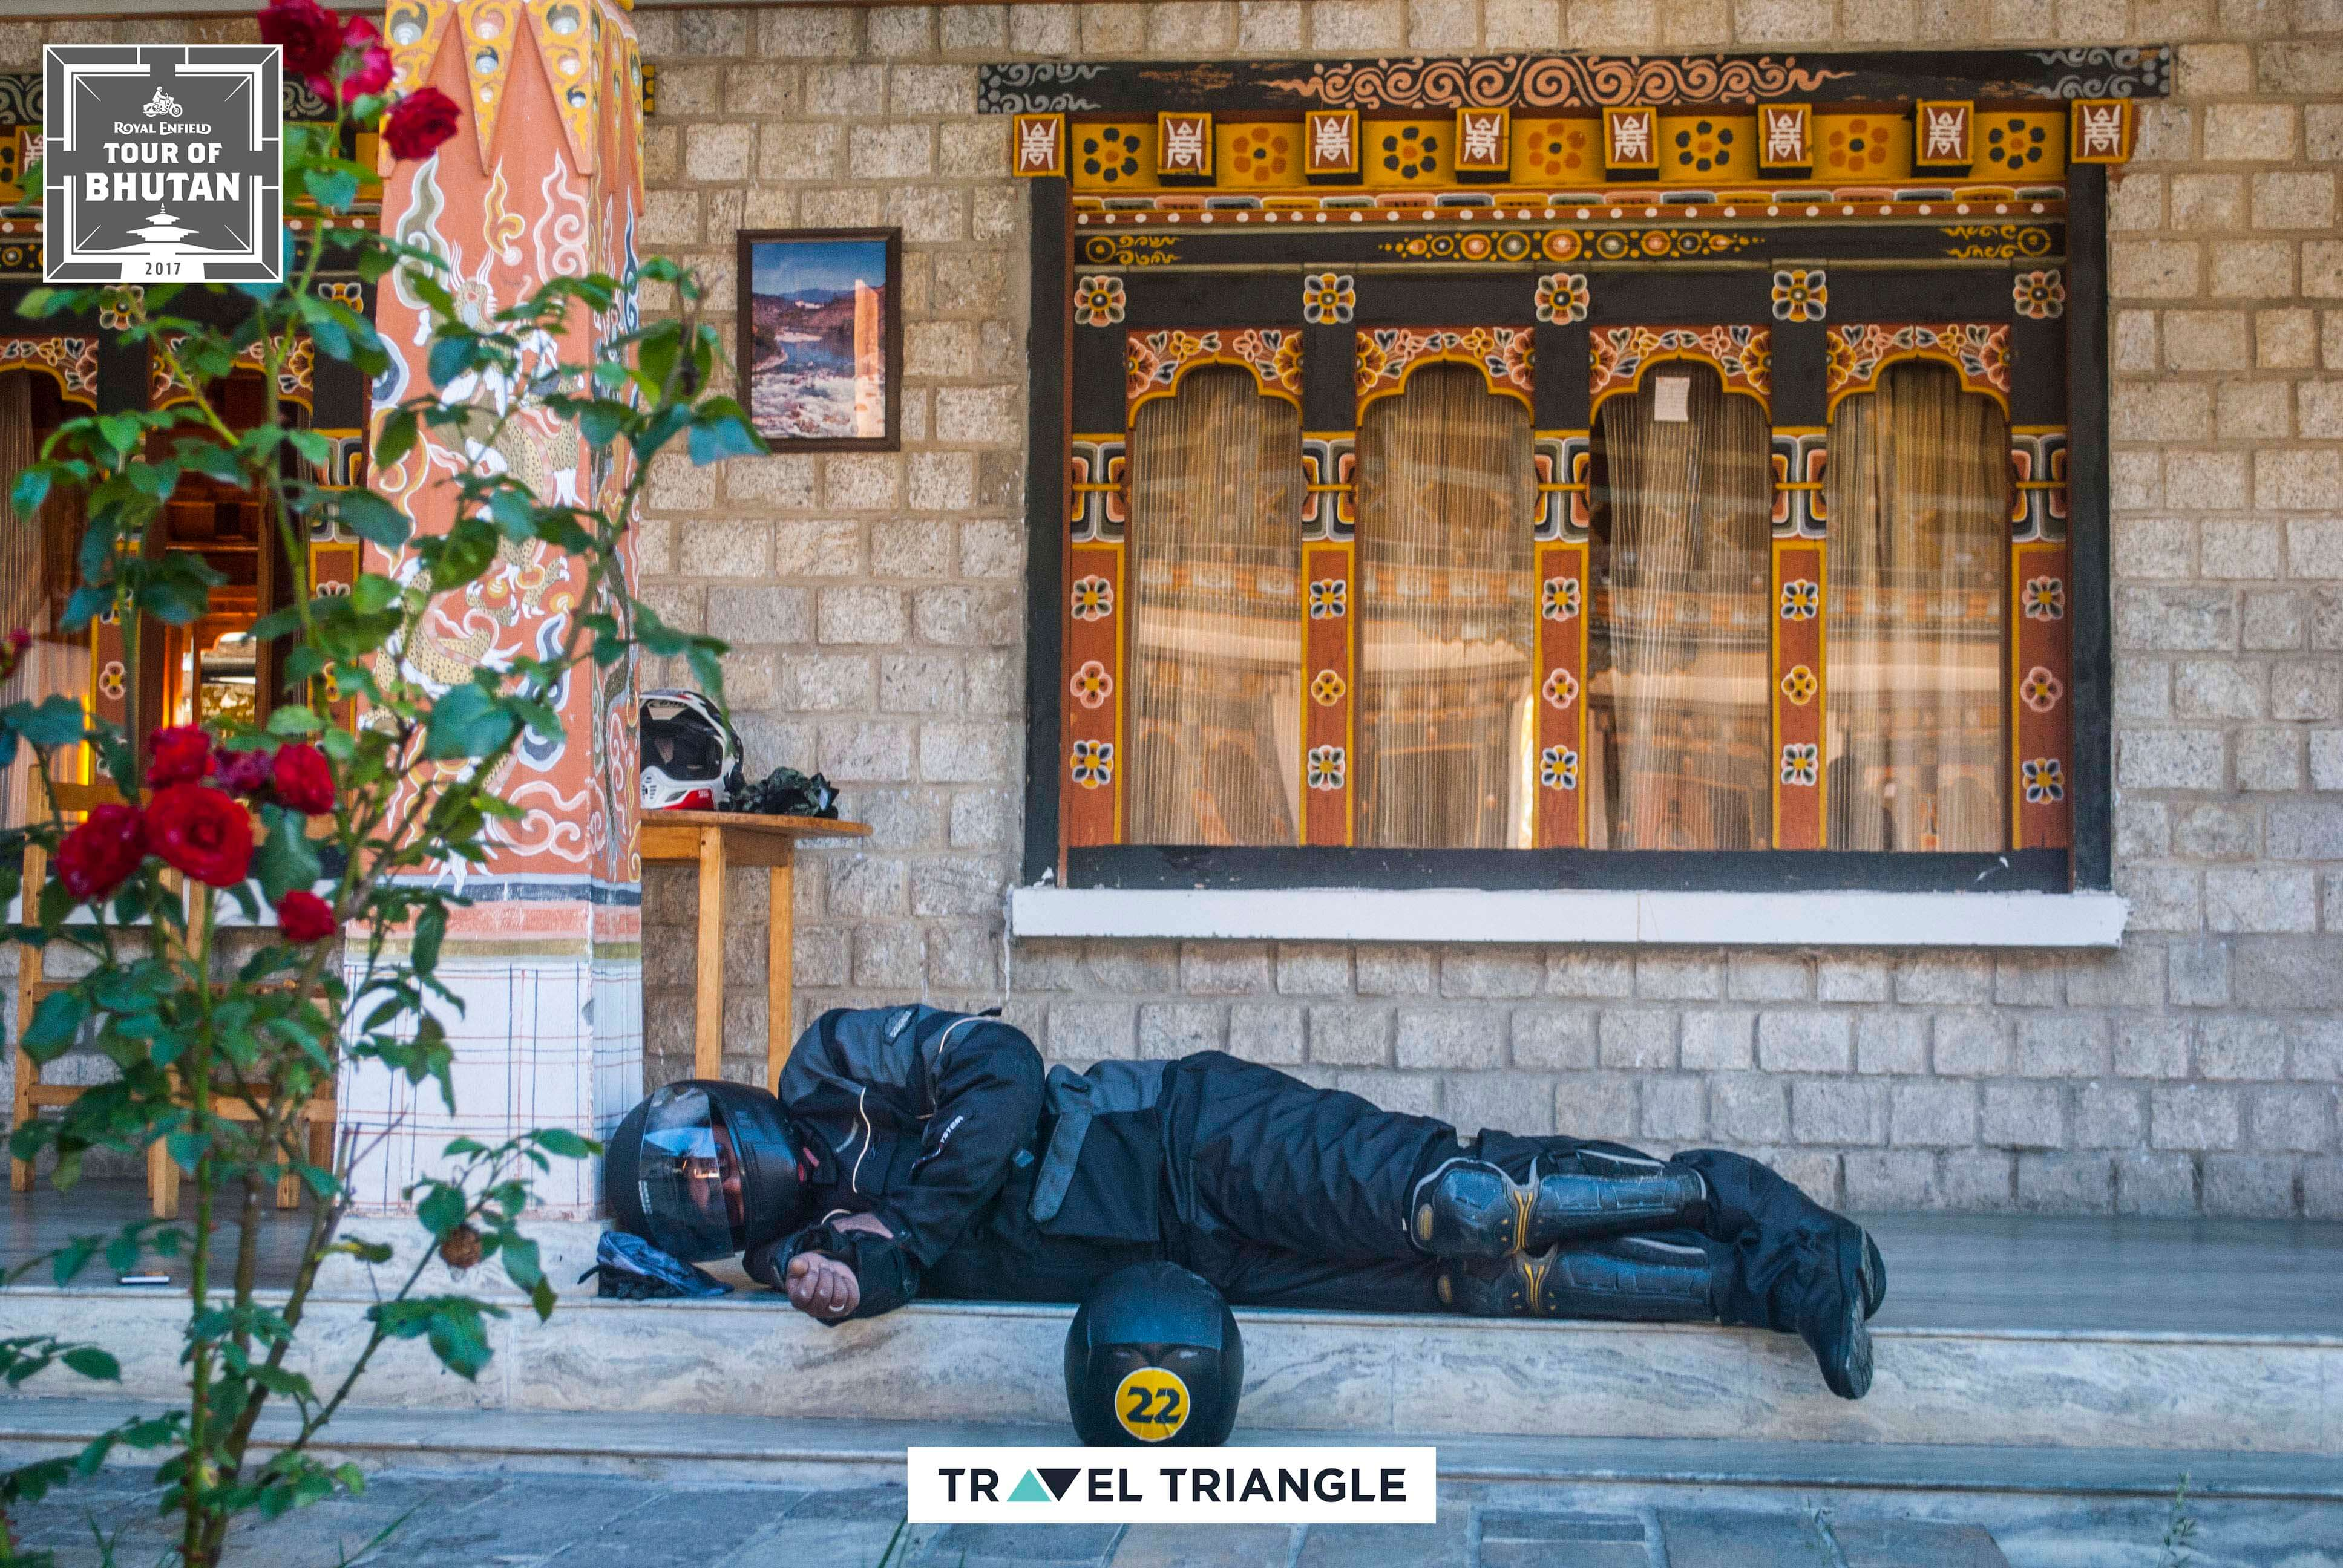 Bumthang to Mongar: a rider sleeping outside the hotel